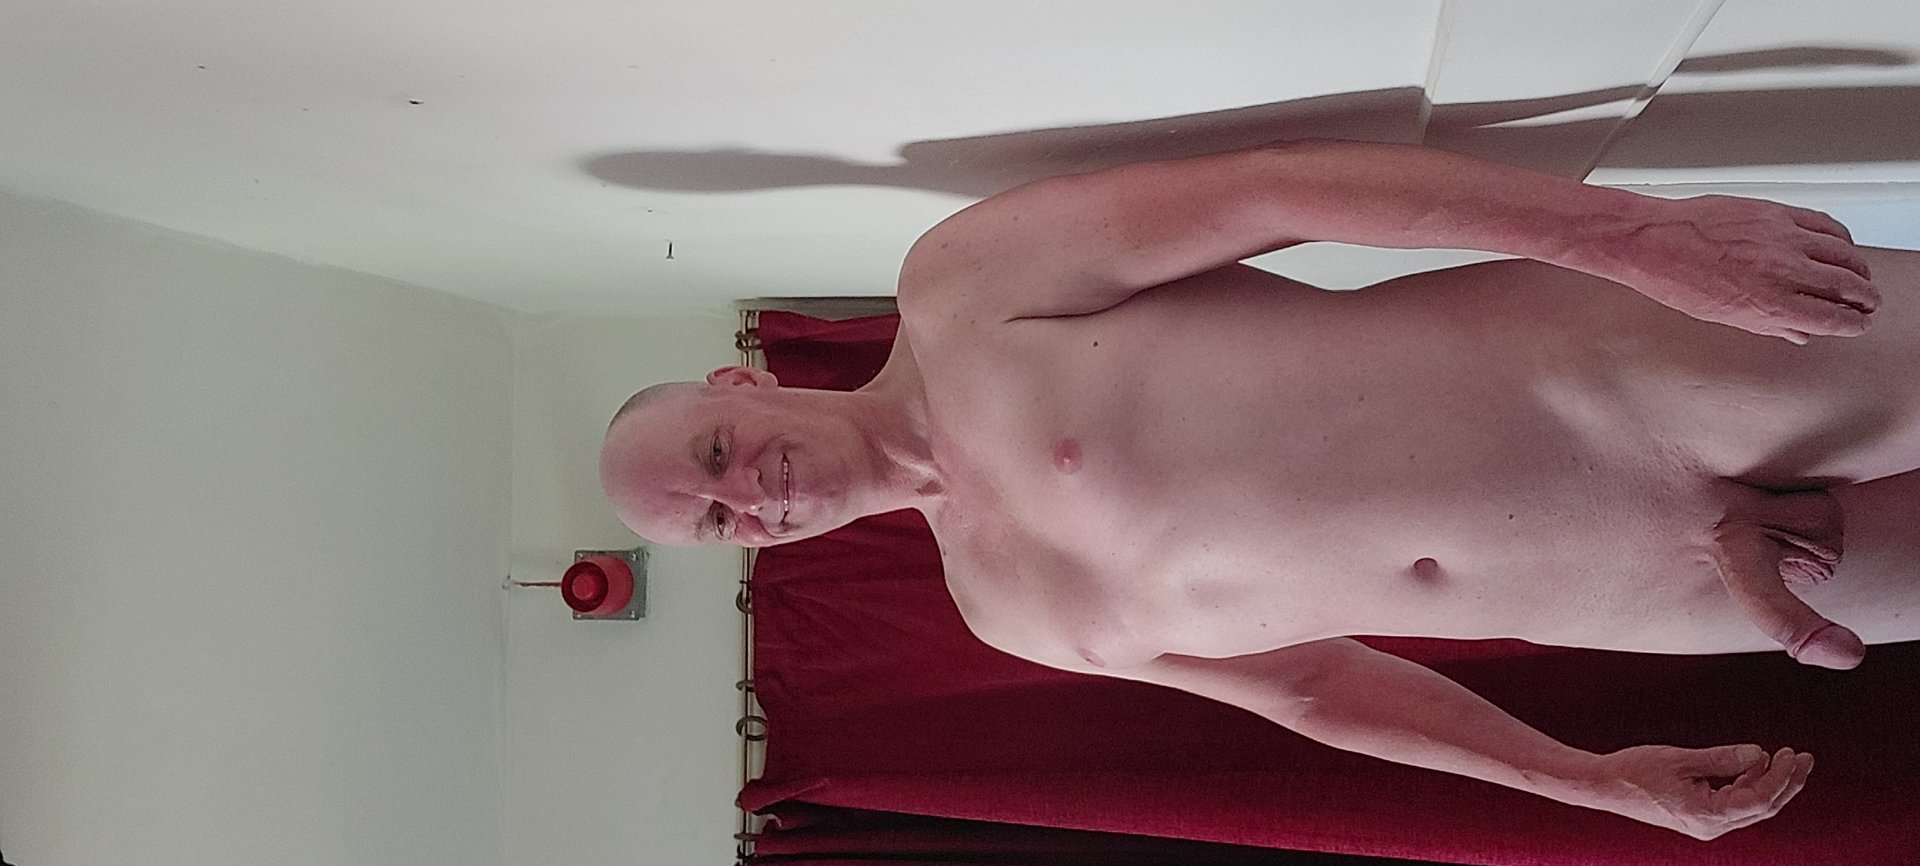 Cumplaywithmycock from Wiltshire,United Kingdom